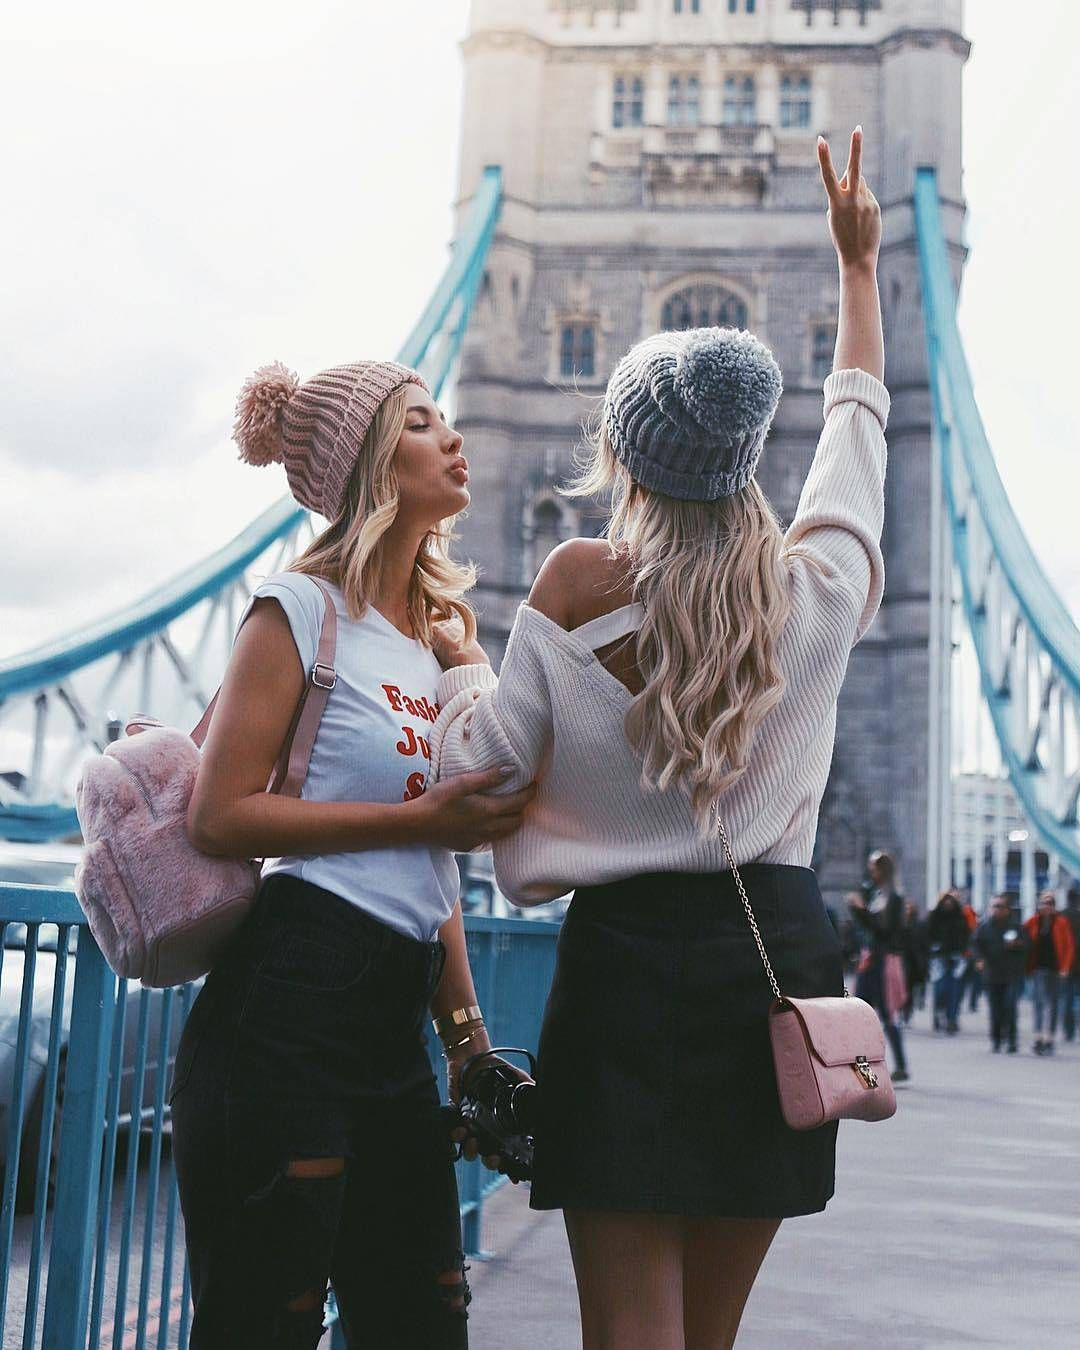 Tag your best friends. credit @carmushka @anajohnson___ #americanstyle    Bff photoshoot poses, Bff, Friends photography